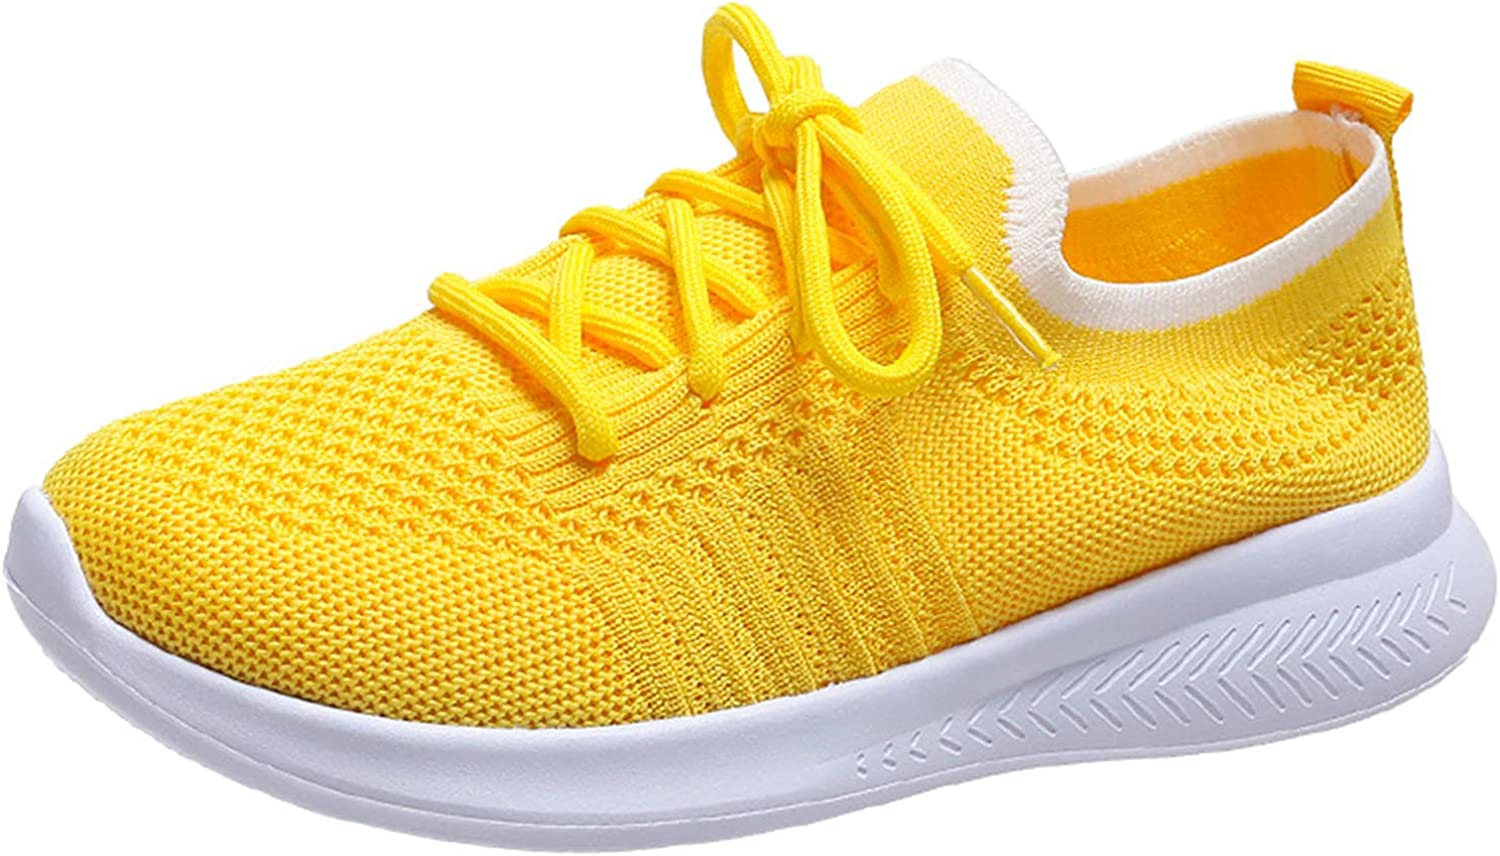 Womens Sneakers Walking Shoes - Breathable Comfort Slip On Athletic Running Sneakers for Sports Tennis Gym Travel Casual